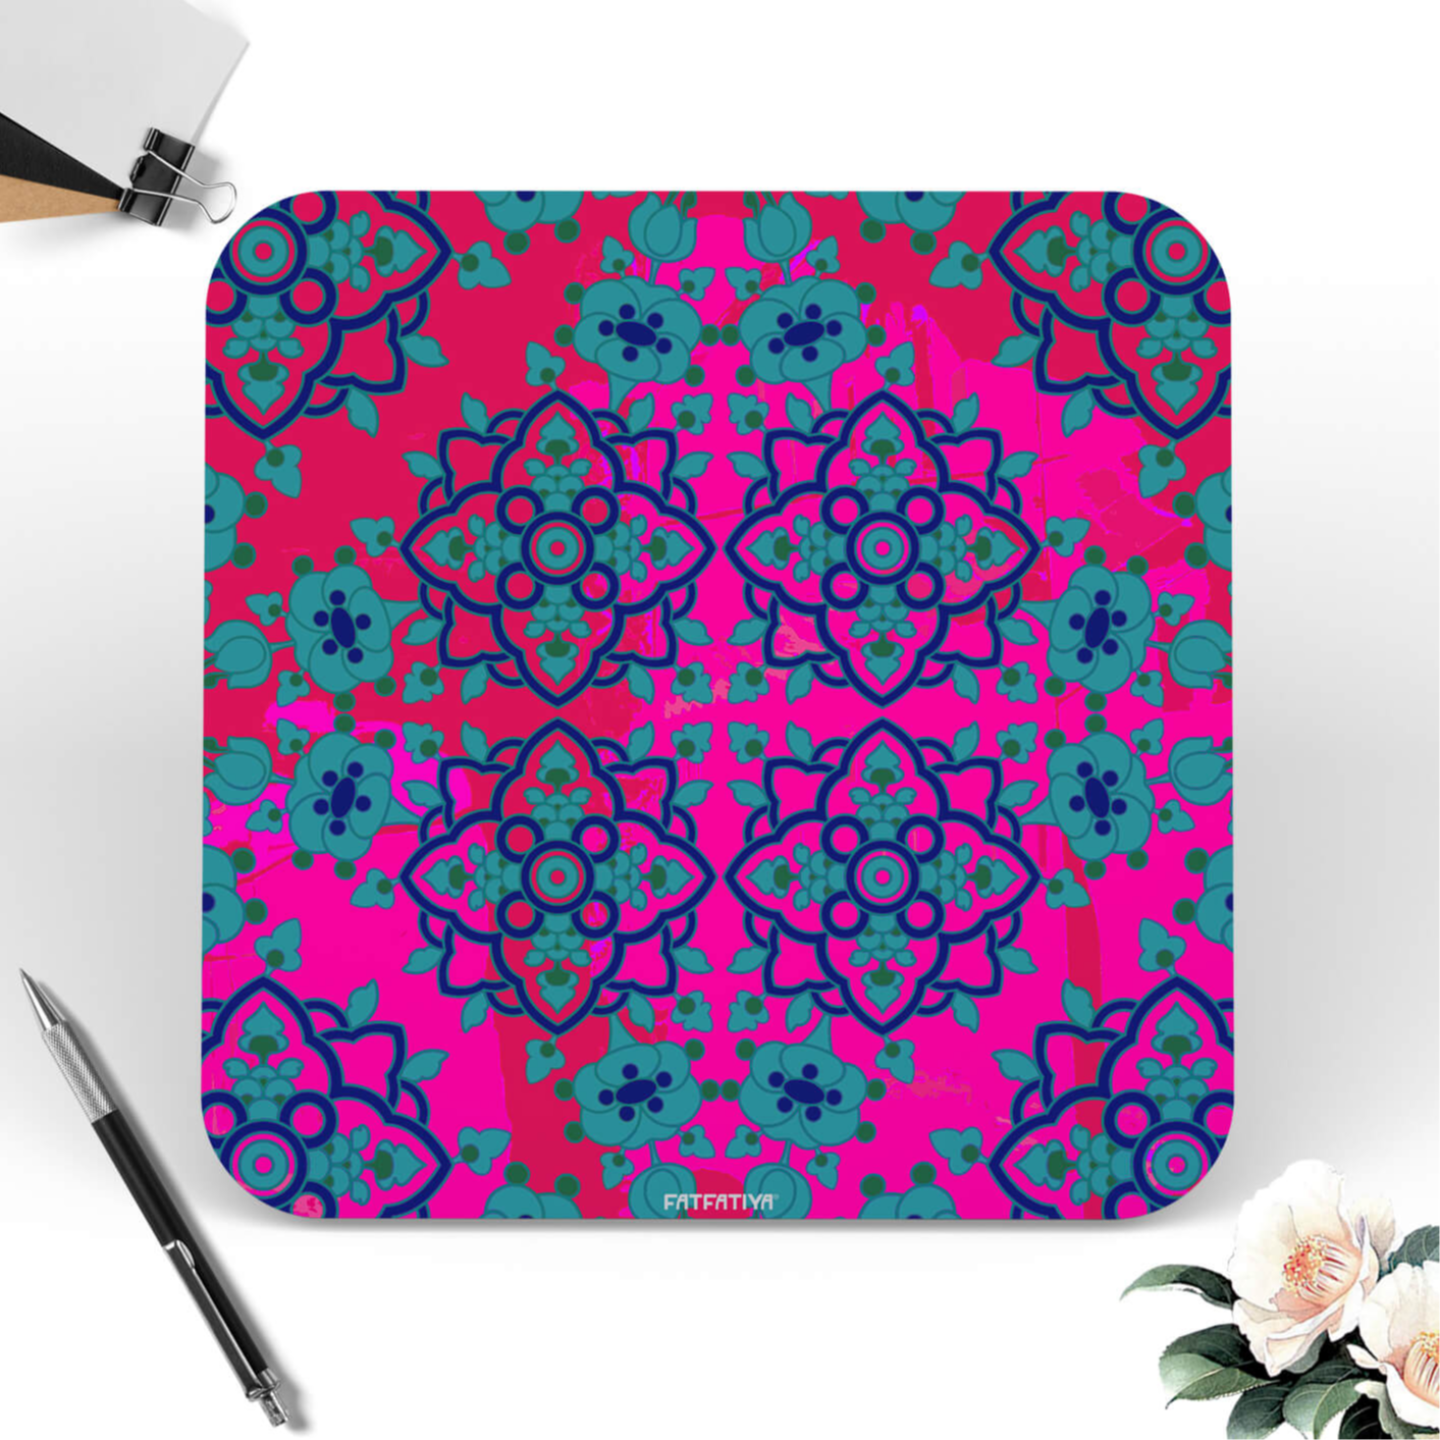 Charming Flower Motif Digital Printed MDF Coaster Set of 6 Pcs